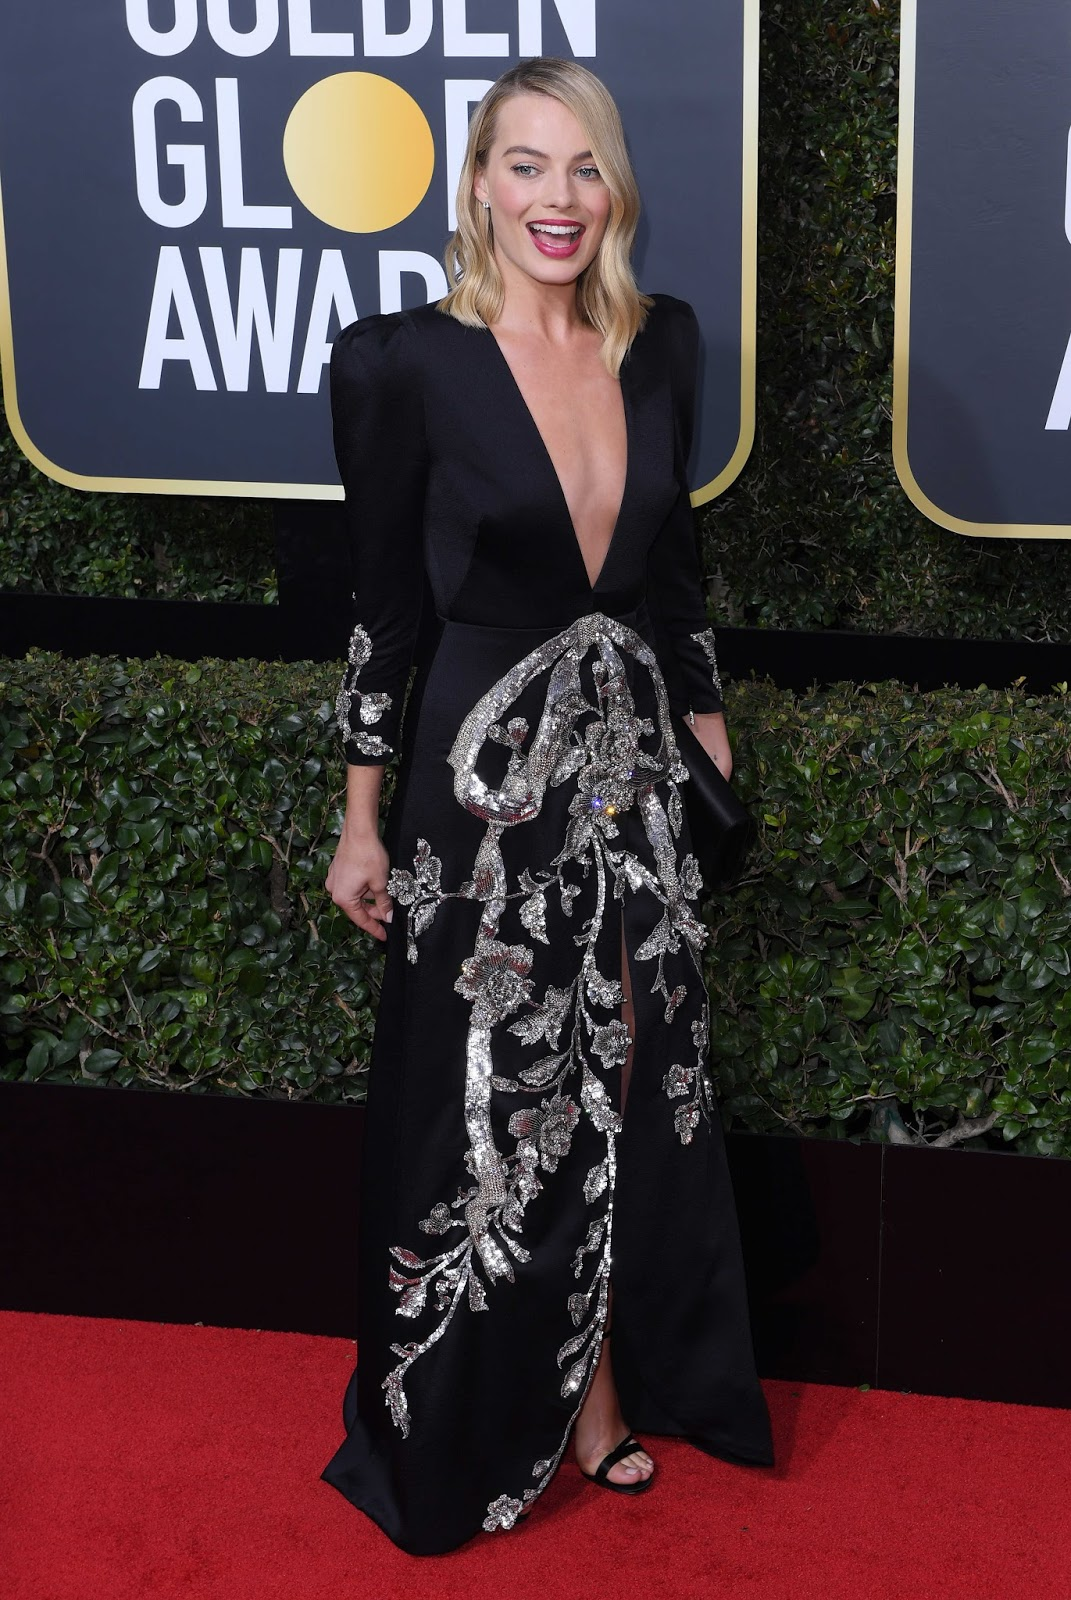 Margot Robbie on the Red Carpet at Golden Globe Awards 2018